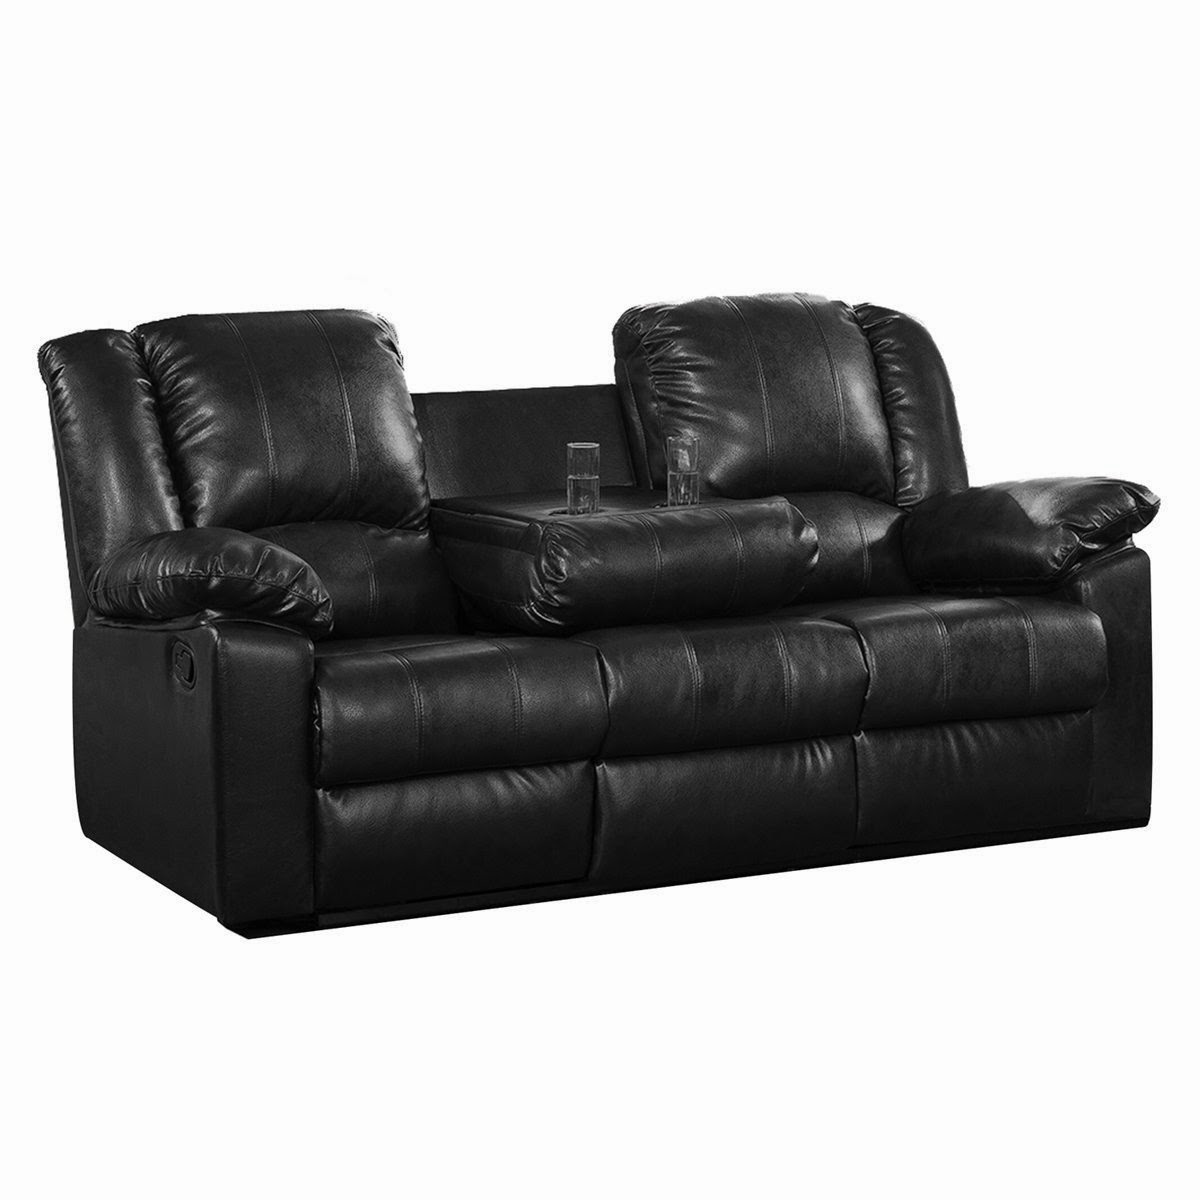 The Best Reclining Leather Sofa Reviews Leather Reclining Sofa With Fold Down Table